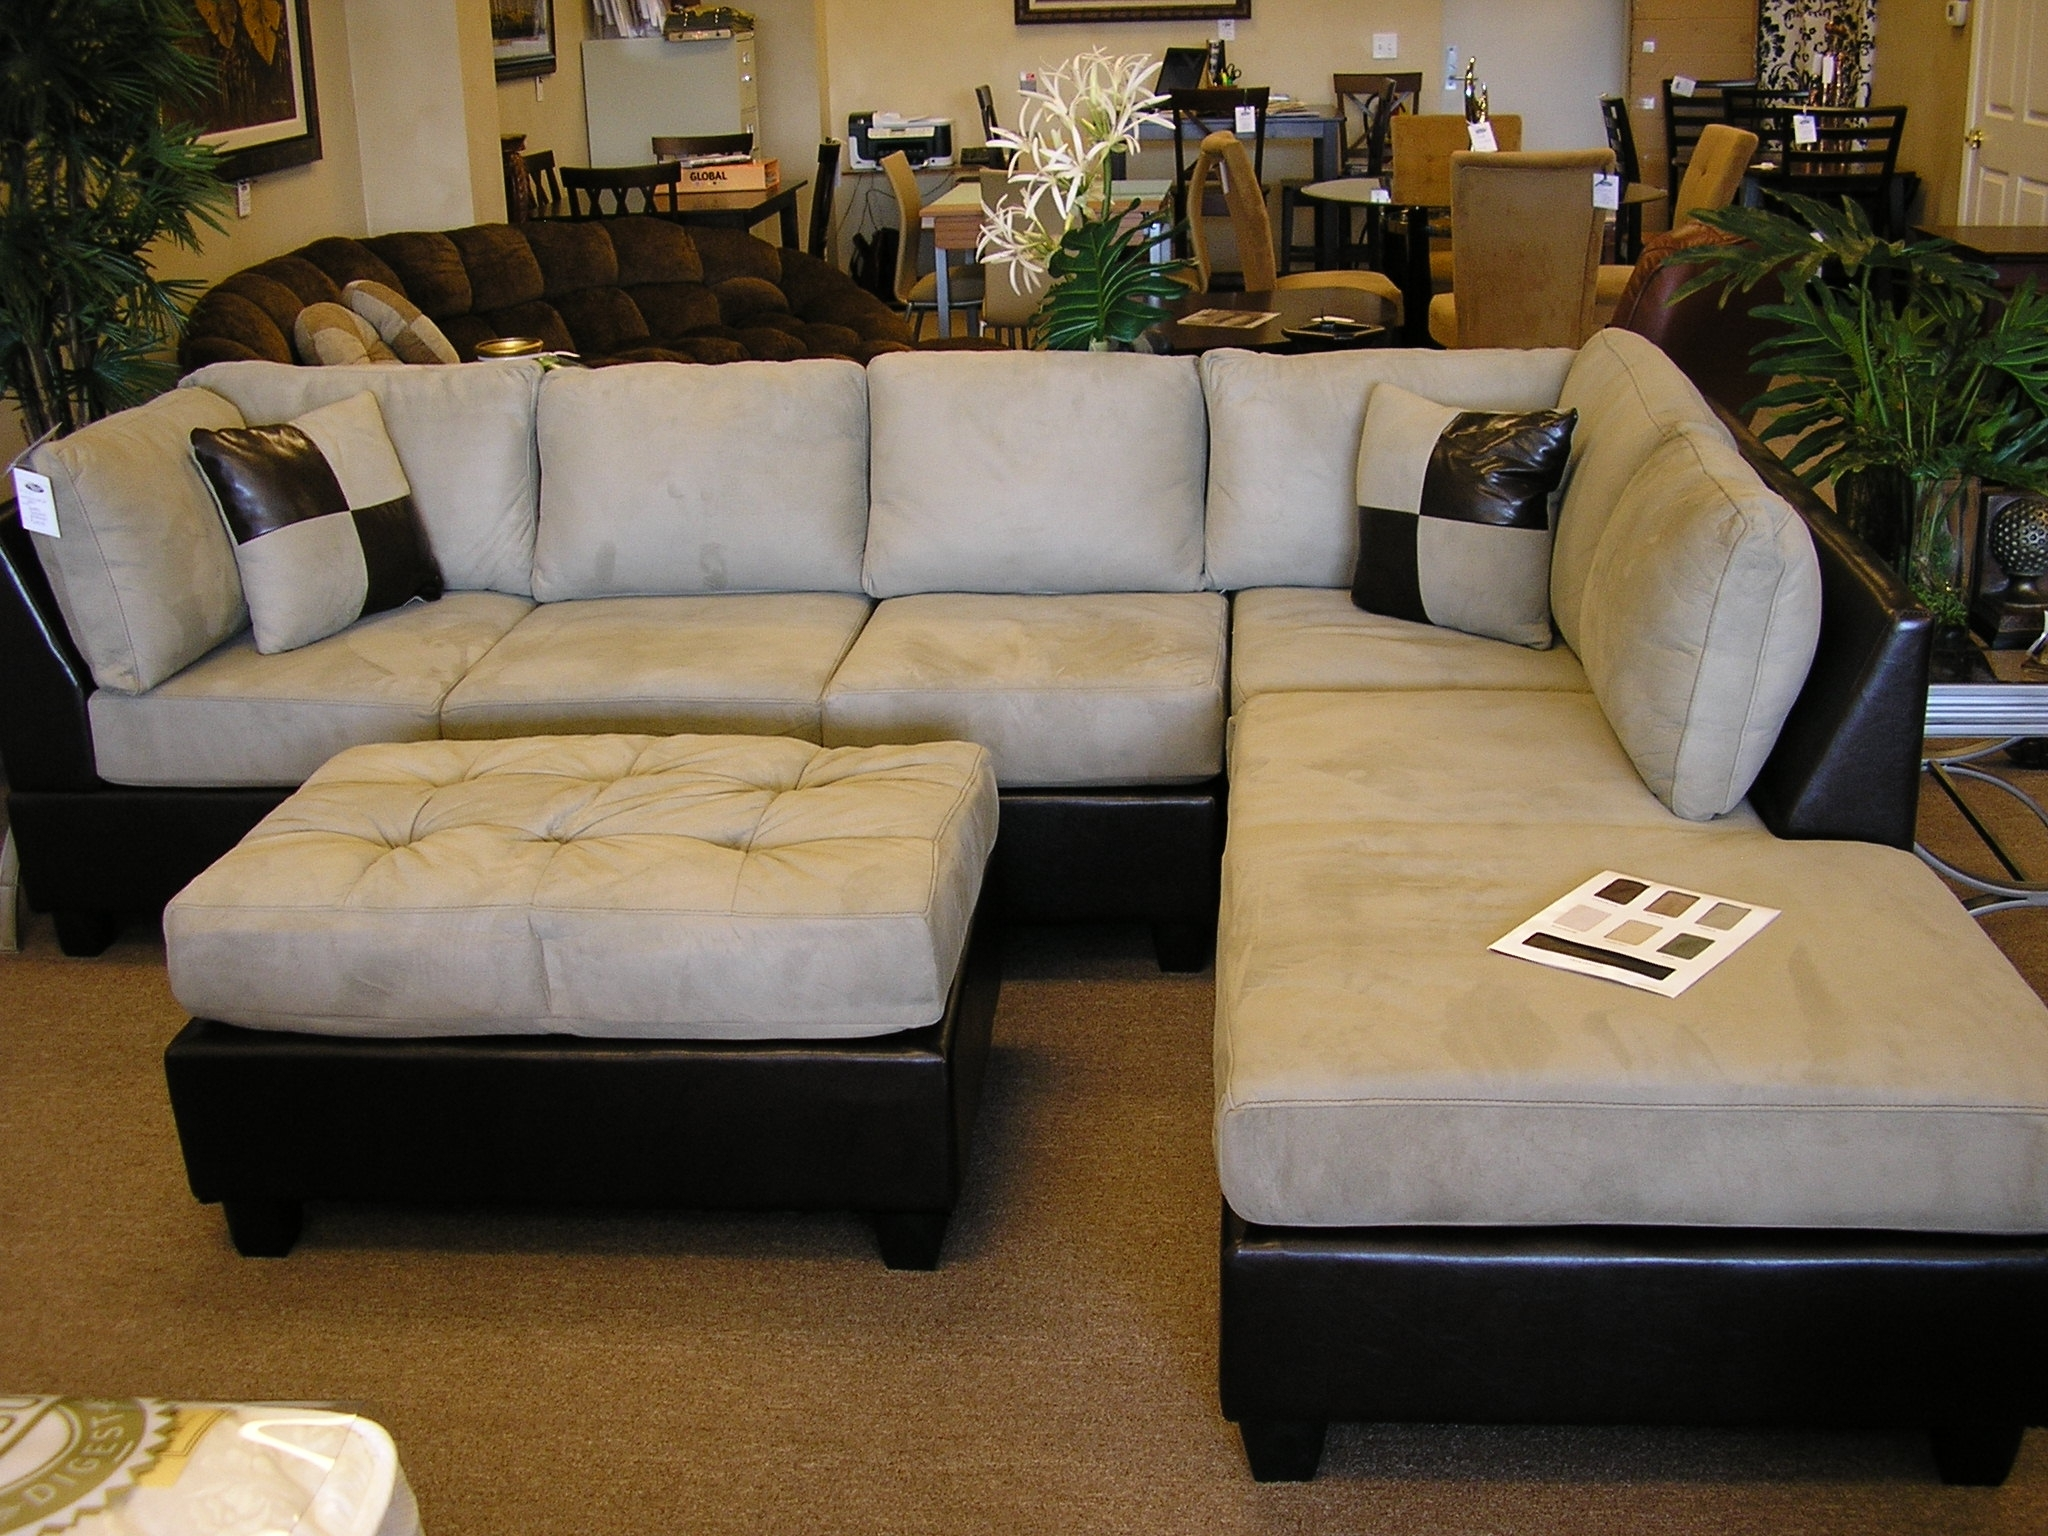 Cheap Sectional Sofa With Ottoman | Catosfera in Sectionals With Ottoman (Image 8 of 15)